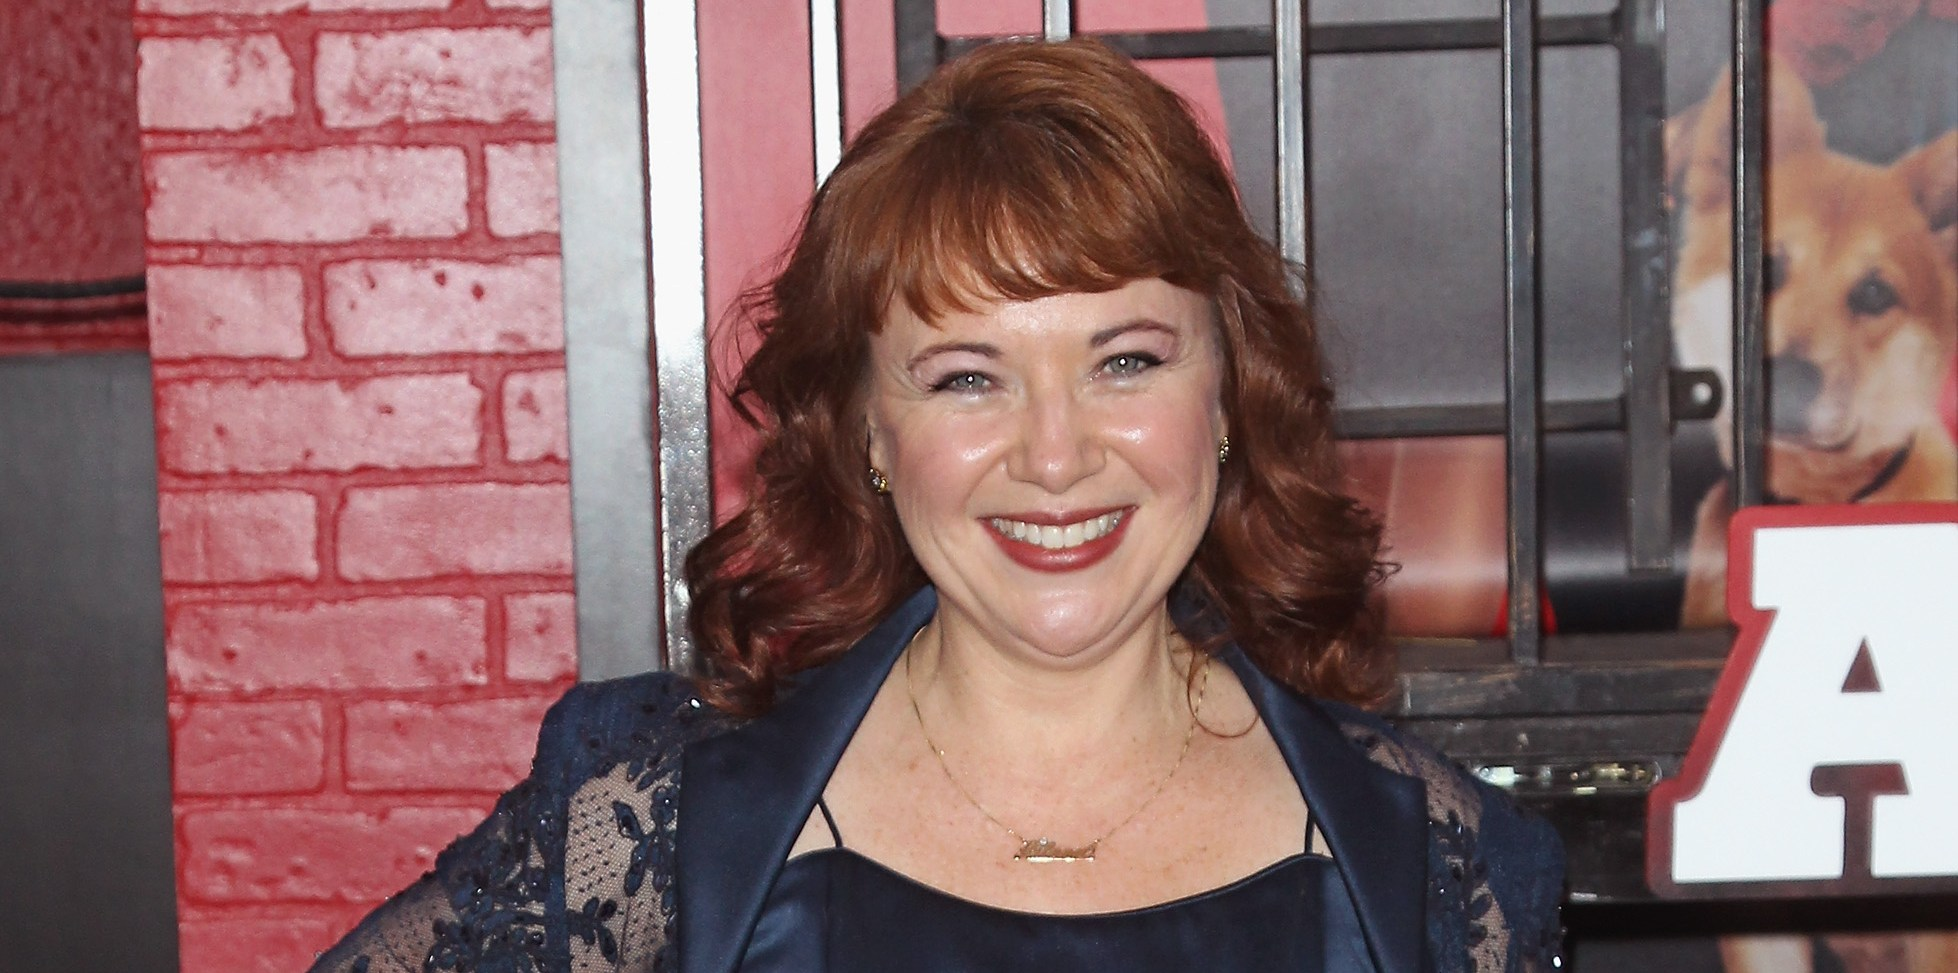 """NEW YORK, NY - DECEMBER 07:  Actress Aileen Quinn attends the """"Annie"""" world premiere at Ziegfeld Theater on December 7, 2014 in New York City.  (Photo by Jim Spellman/WireImage)"""